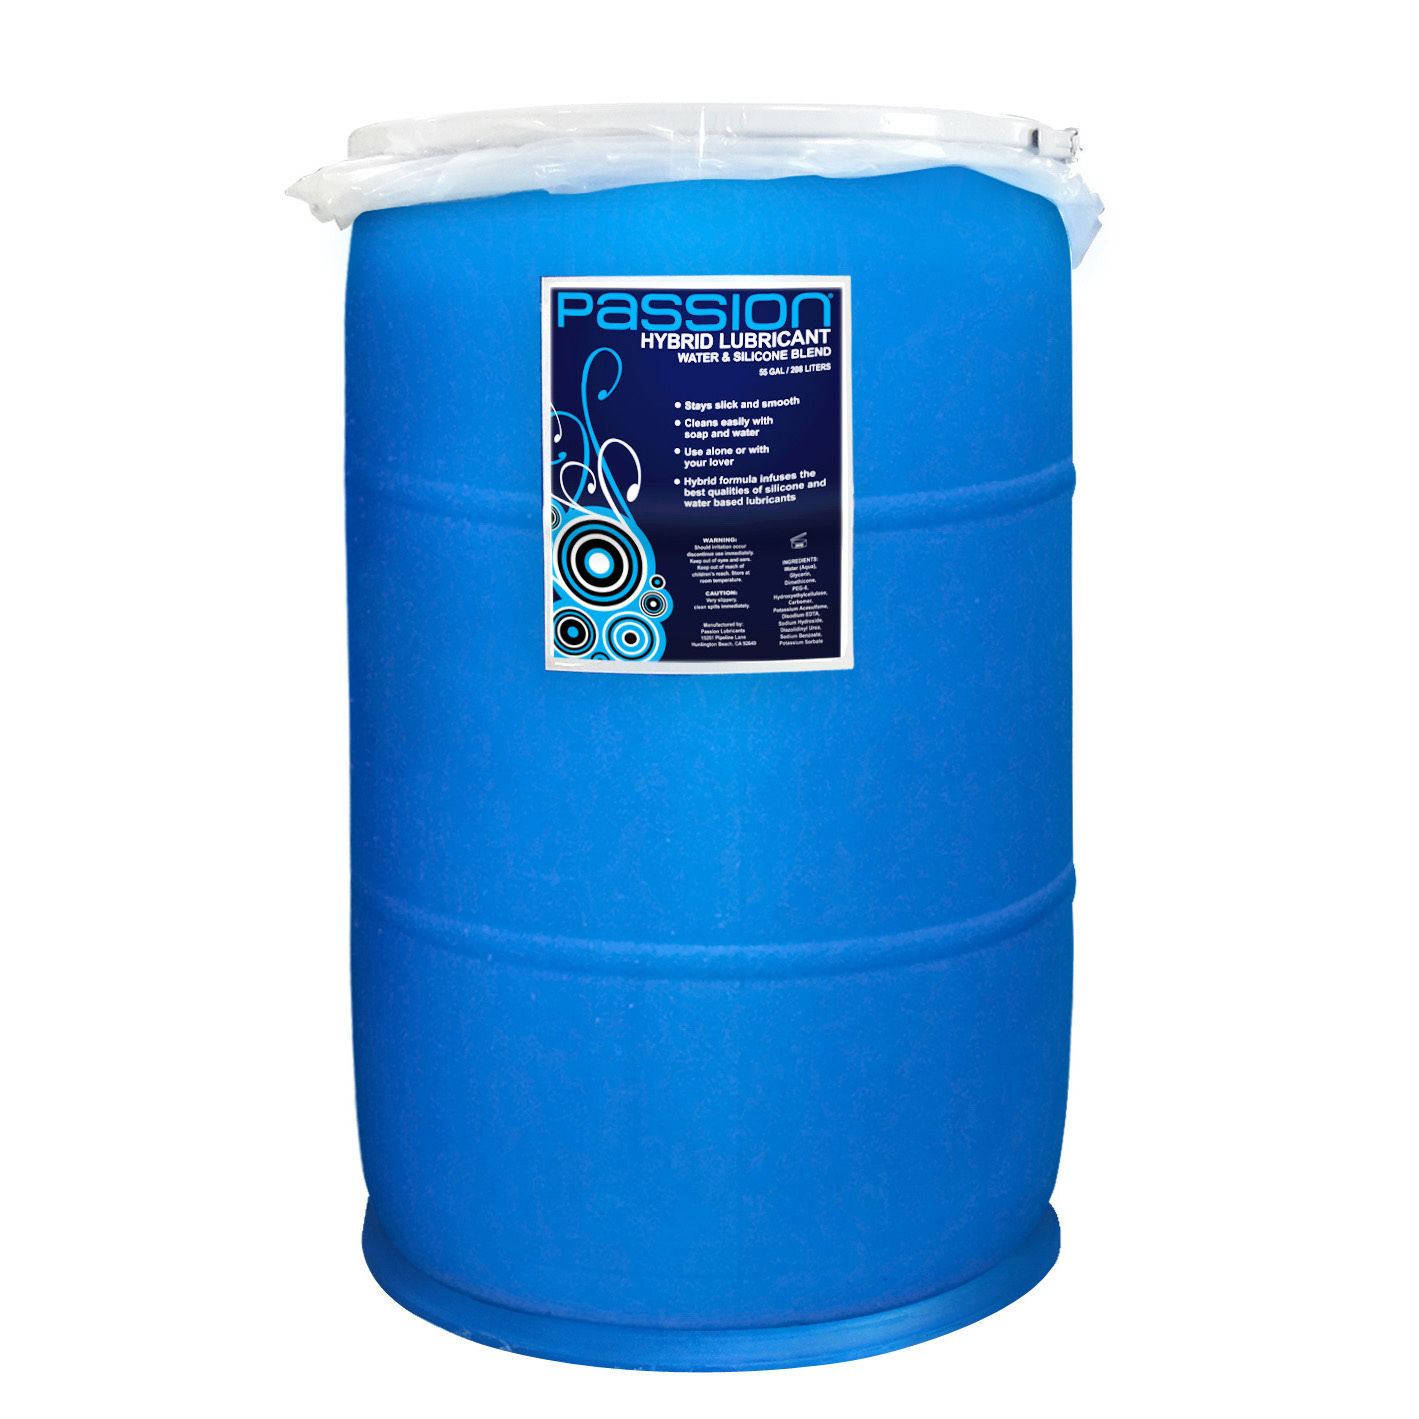 Passion Water and Silicone Blend Hybrid Lubricant – 55 Gallon